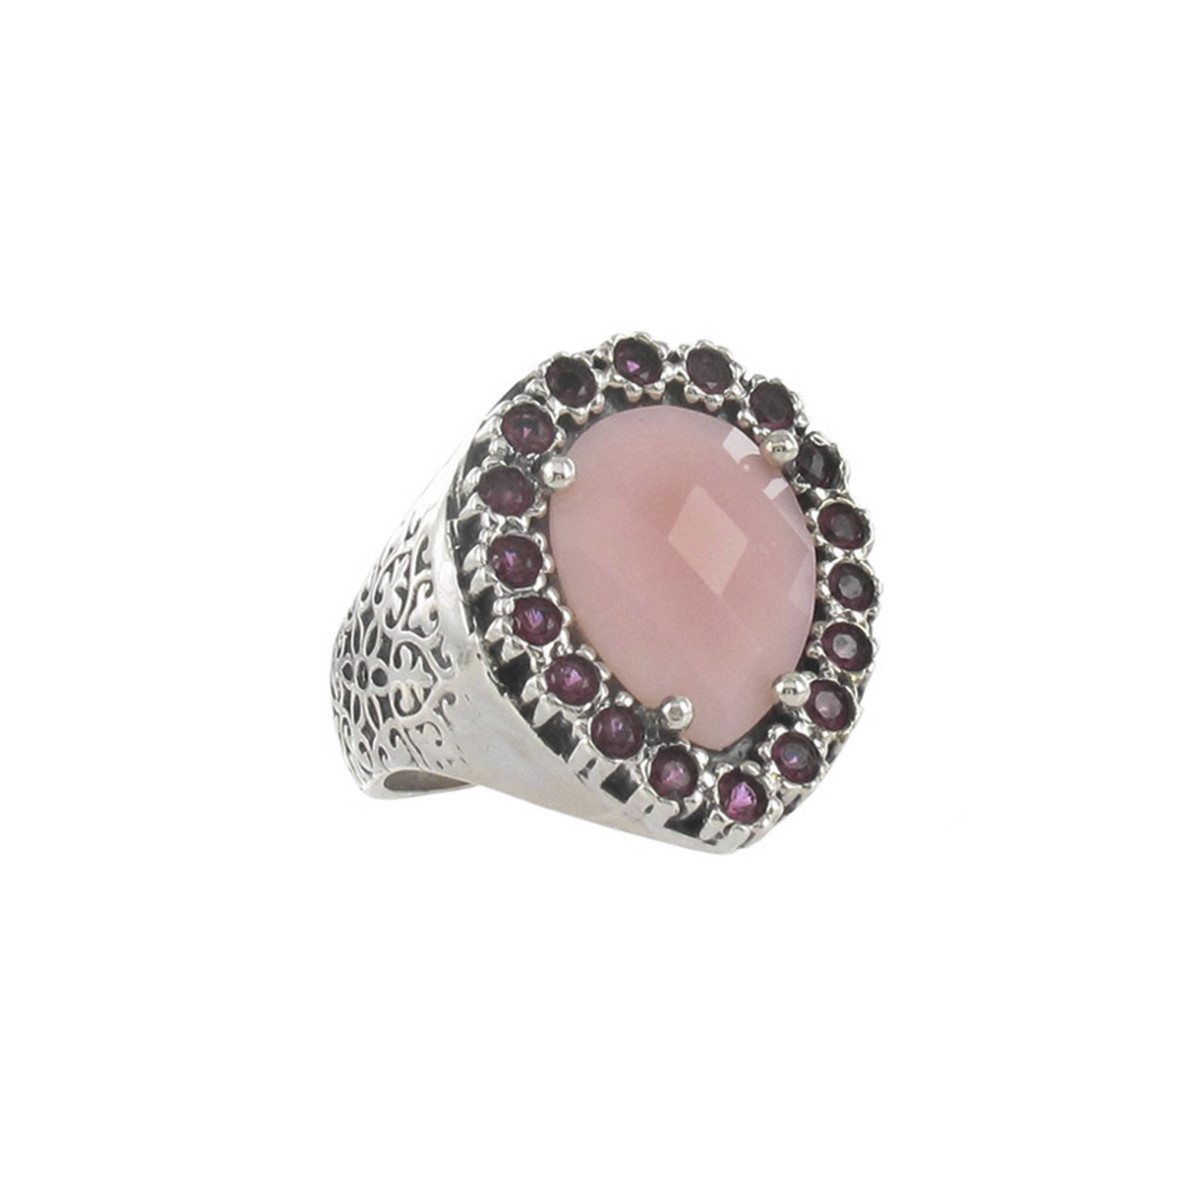 STERLING SILVER RING WITH PINK OPAL